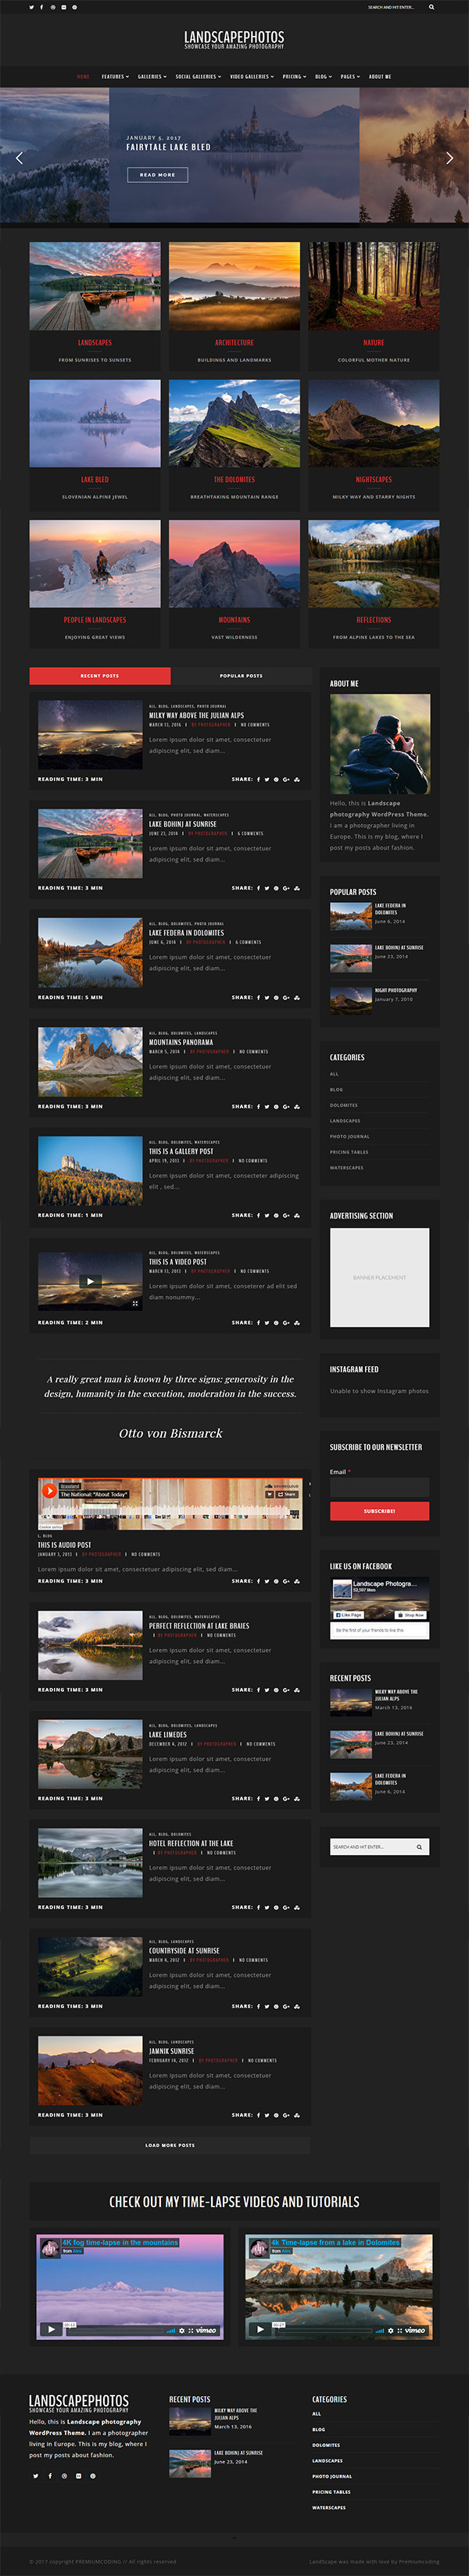 Land - Photography WordPress Theme